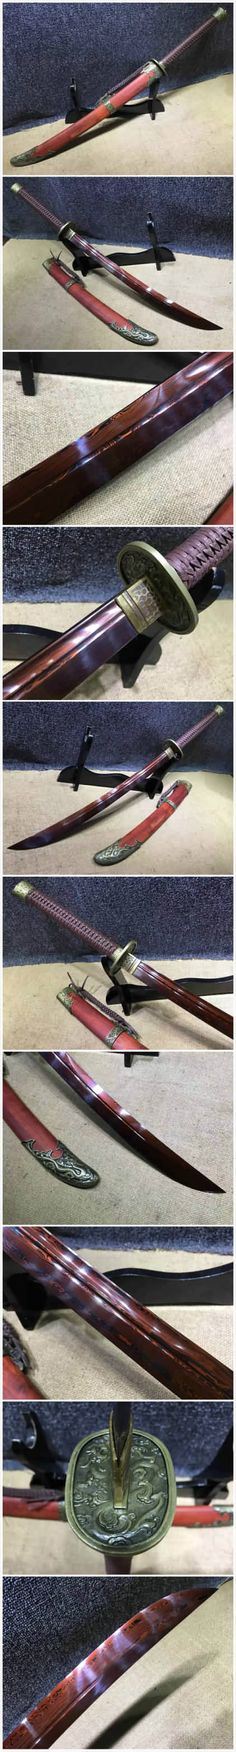 Broadsword,Damascus steel red blade,Red scabbard,Alloy fitting,Length 35 inch